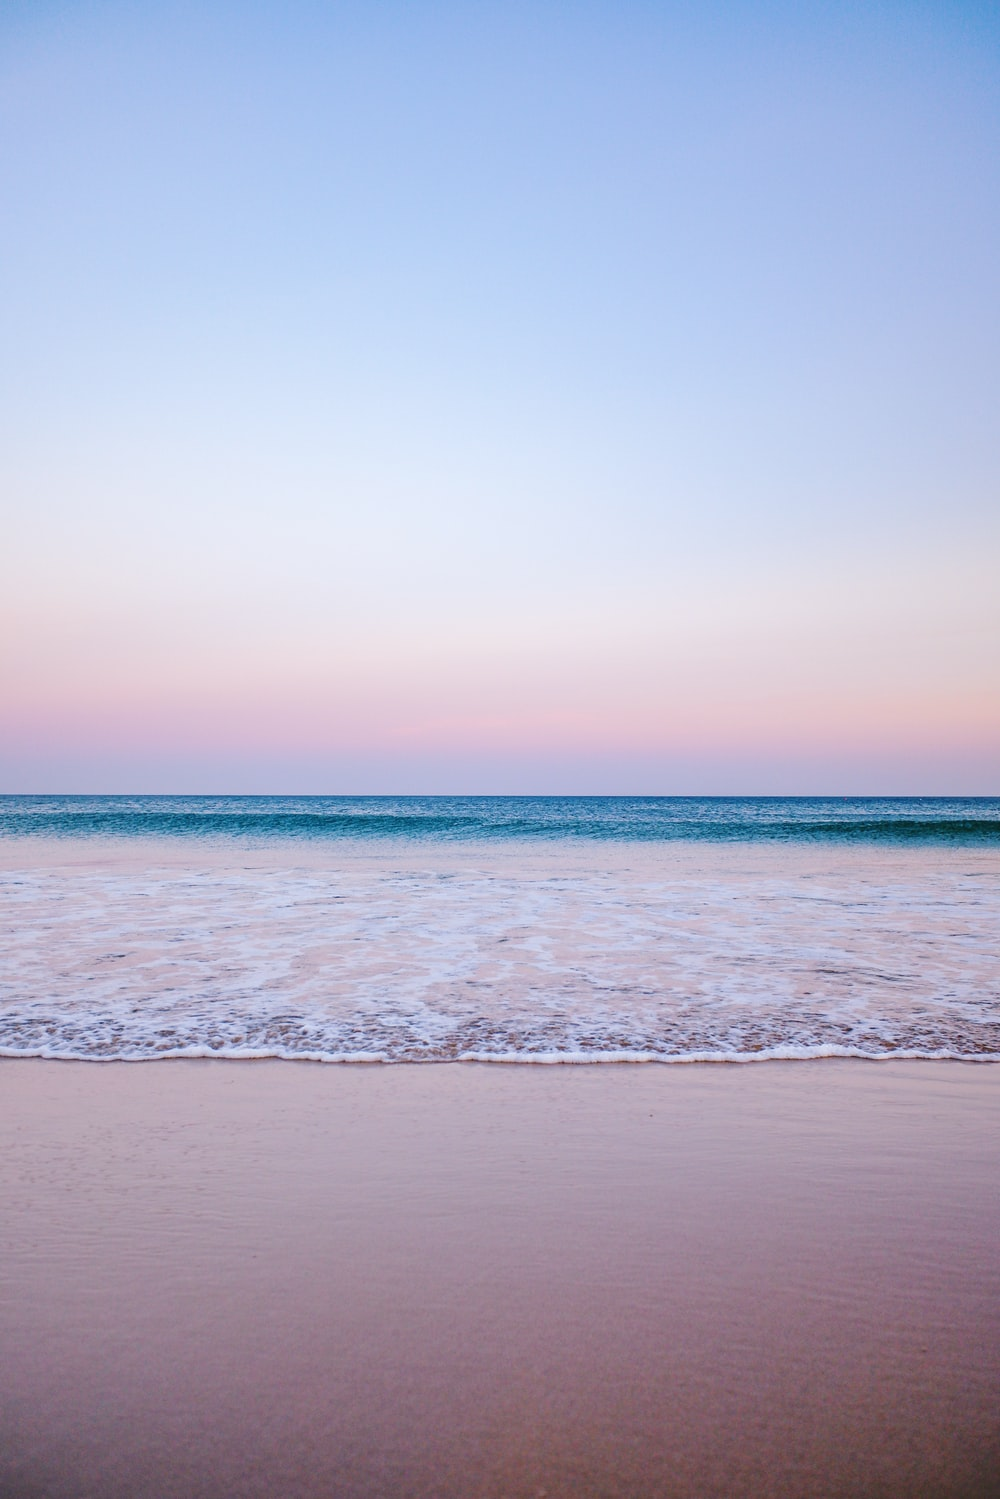 Pastel Beach Pictures Download Free Images On Unsplash Wallpaperaesthetic instagram posts photos and videos picuki com. pastel beach pictures download free